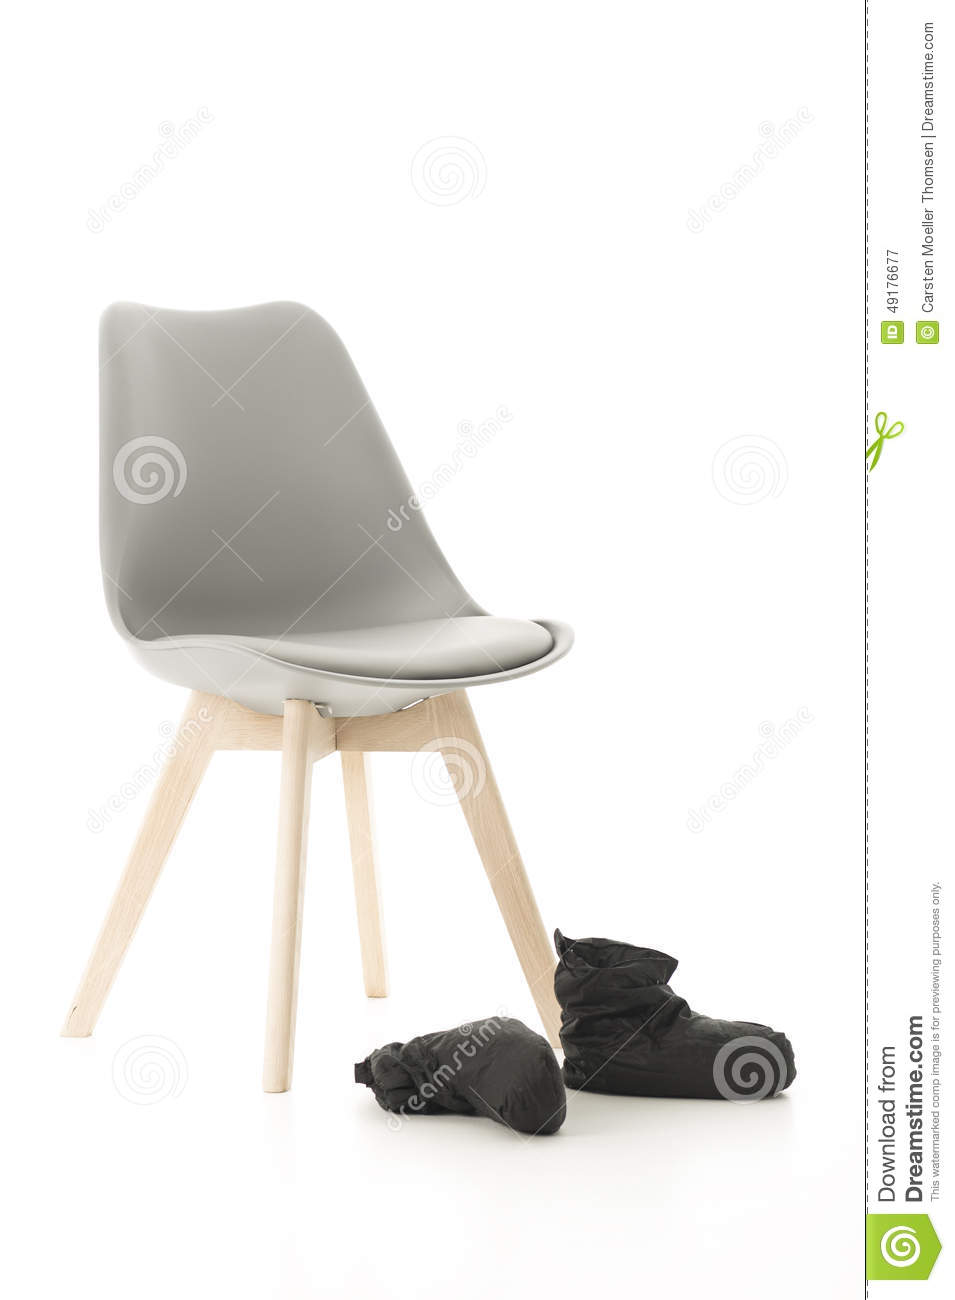 Wooden Leg Chair and Black Boots on White